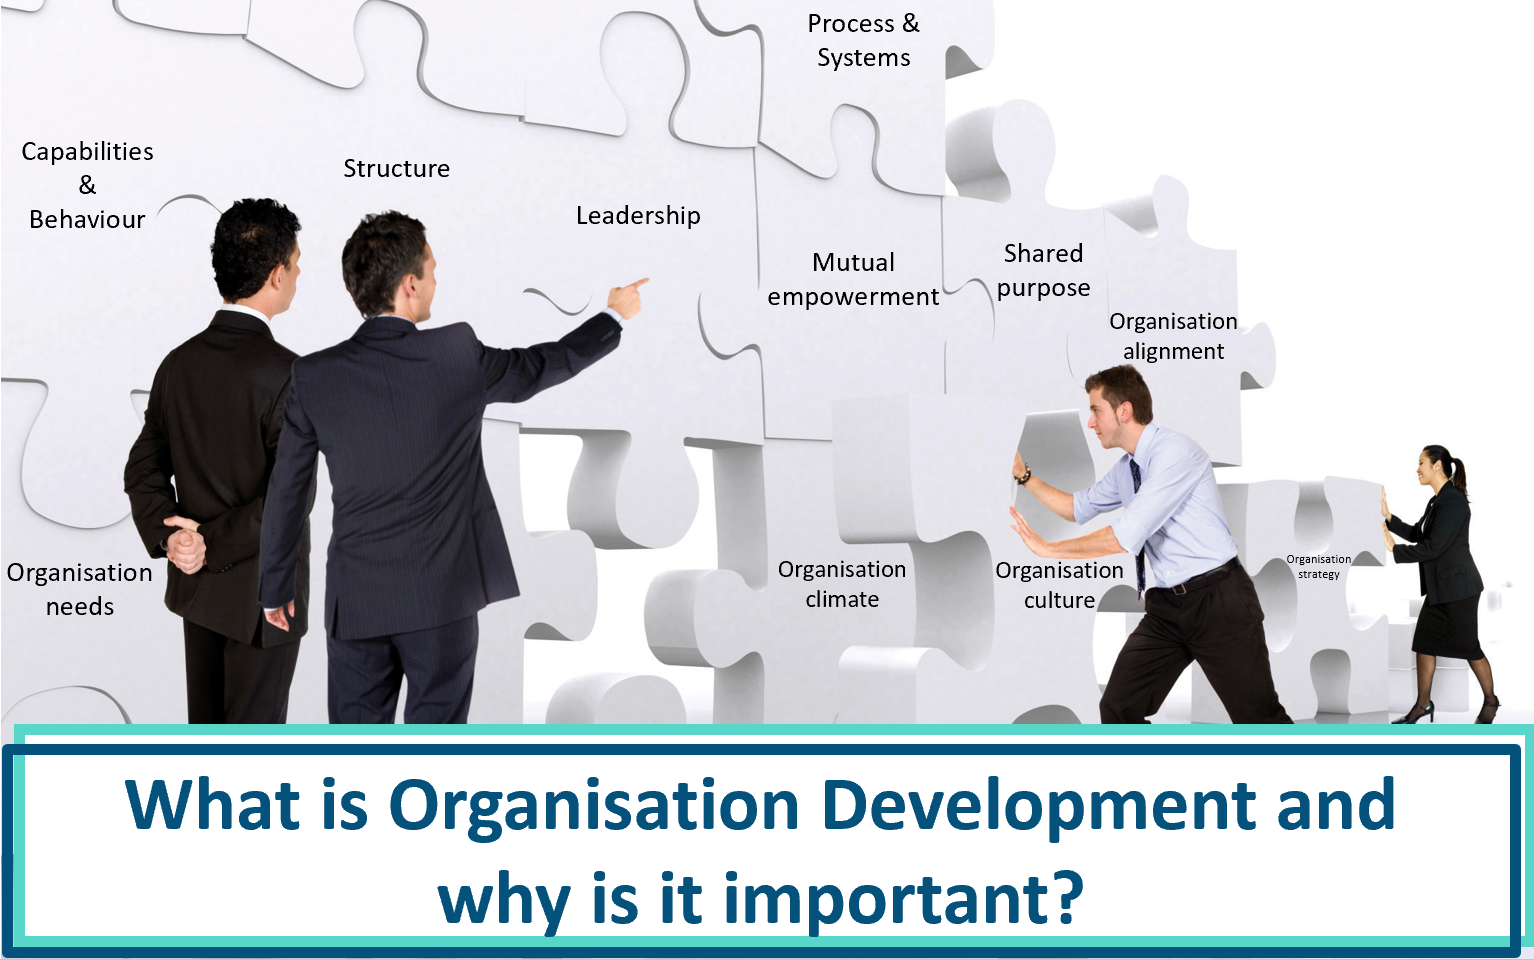 What is Organisation Development and why is it important?